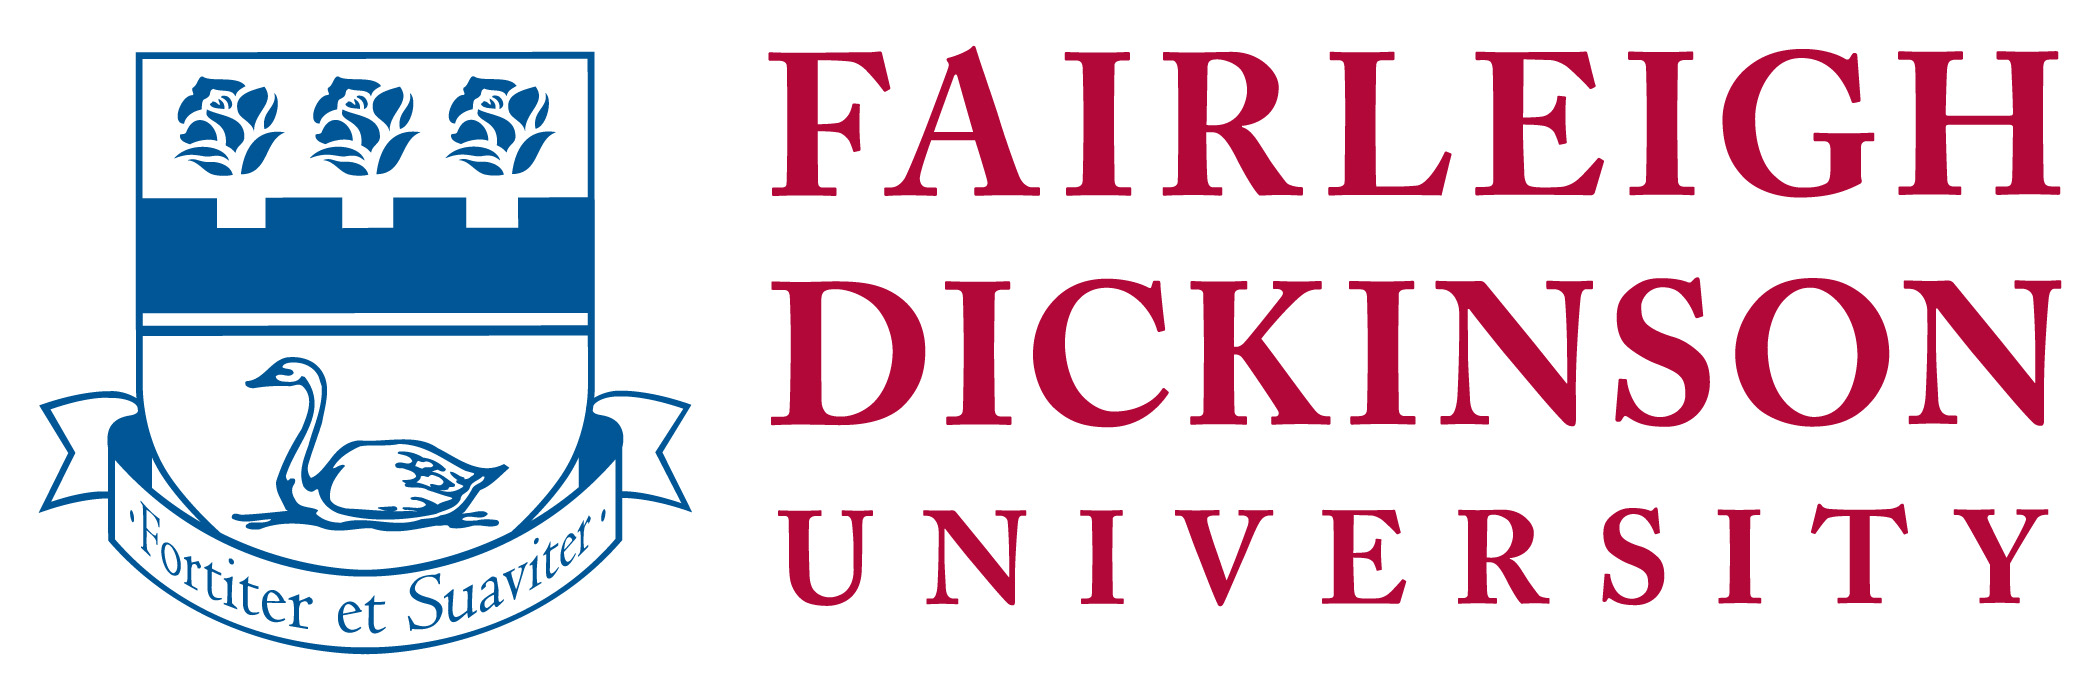 Farleigh Dickinson University